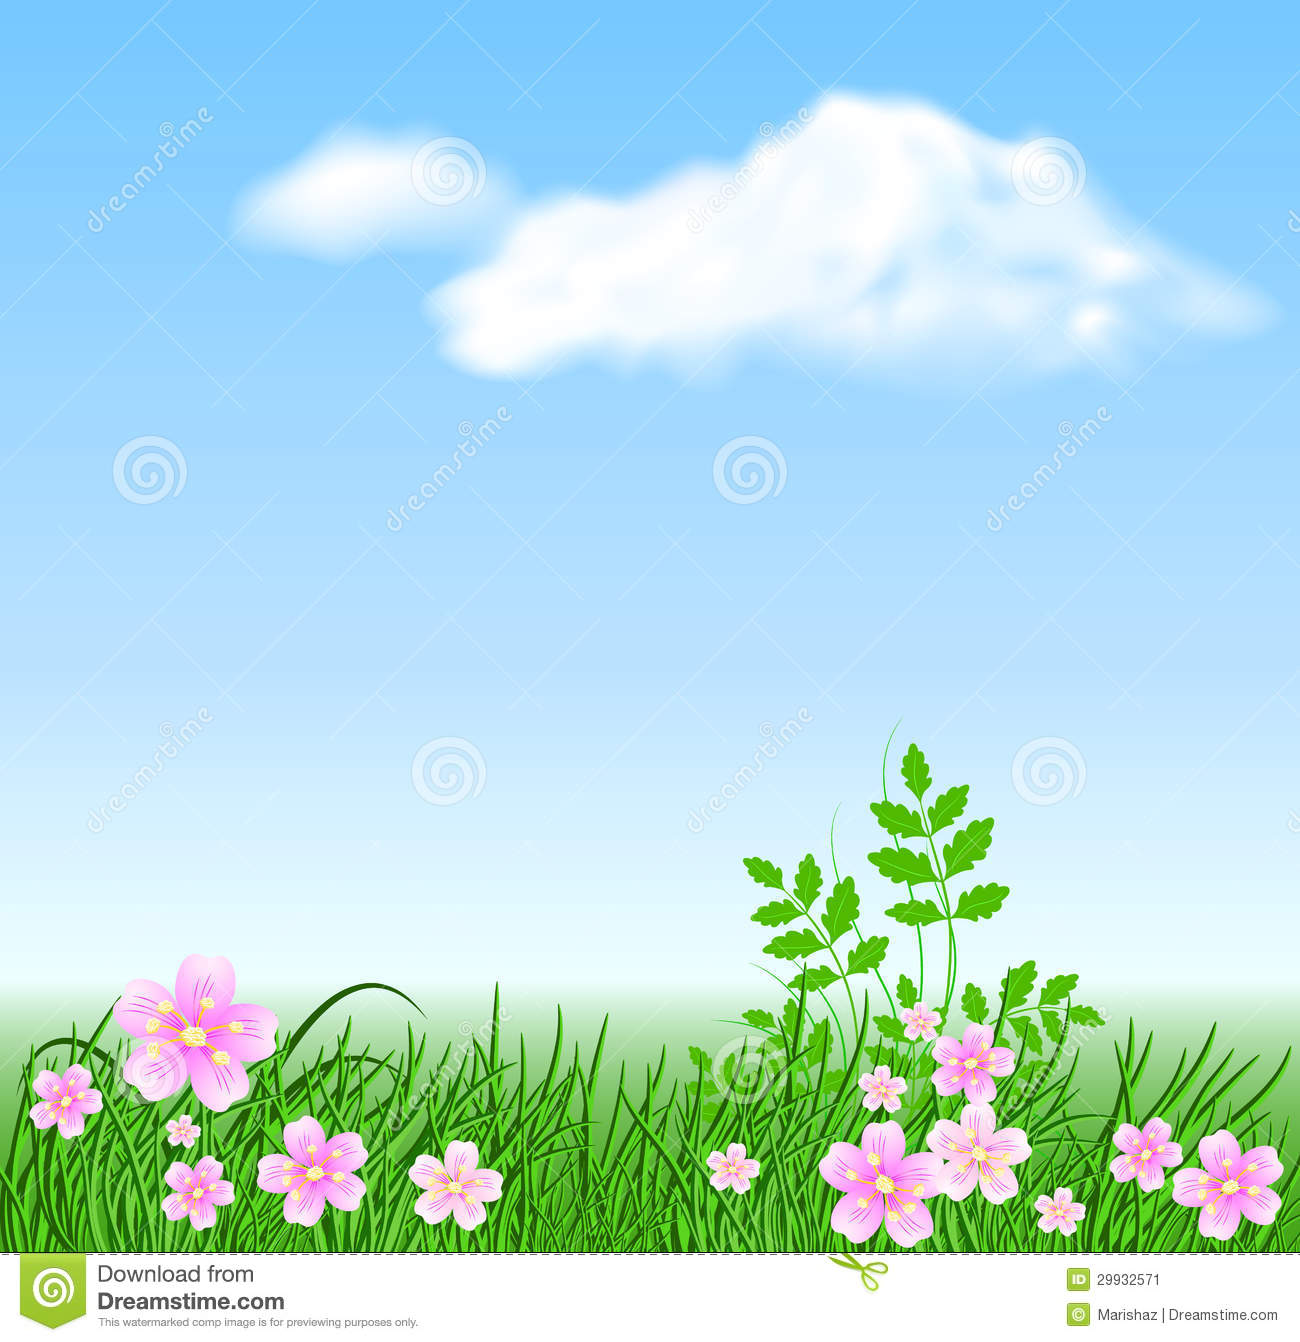 Flower meadow clipart.